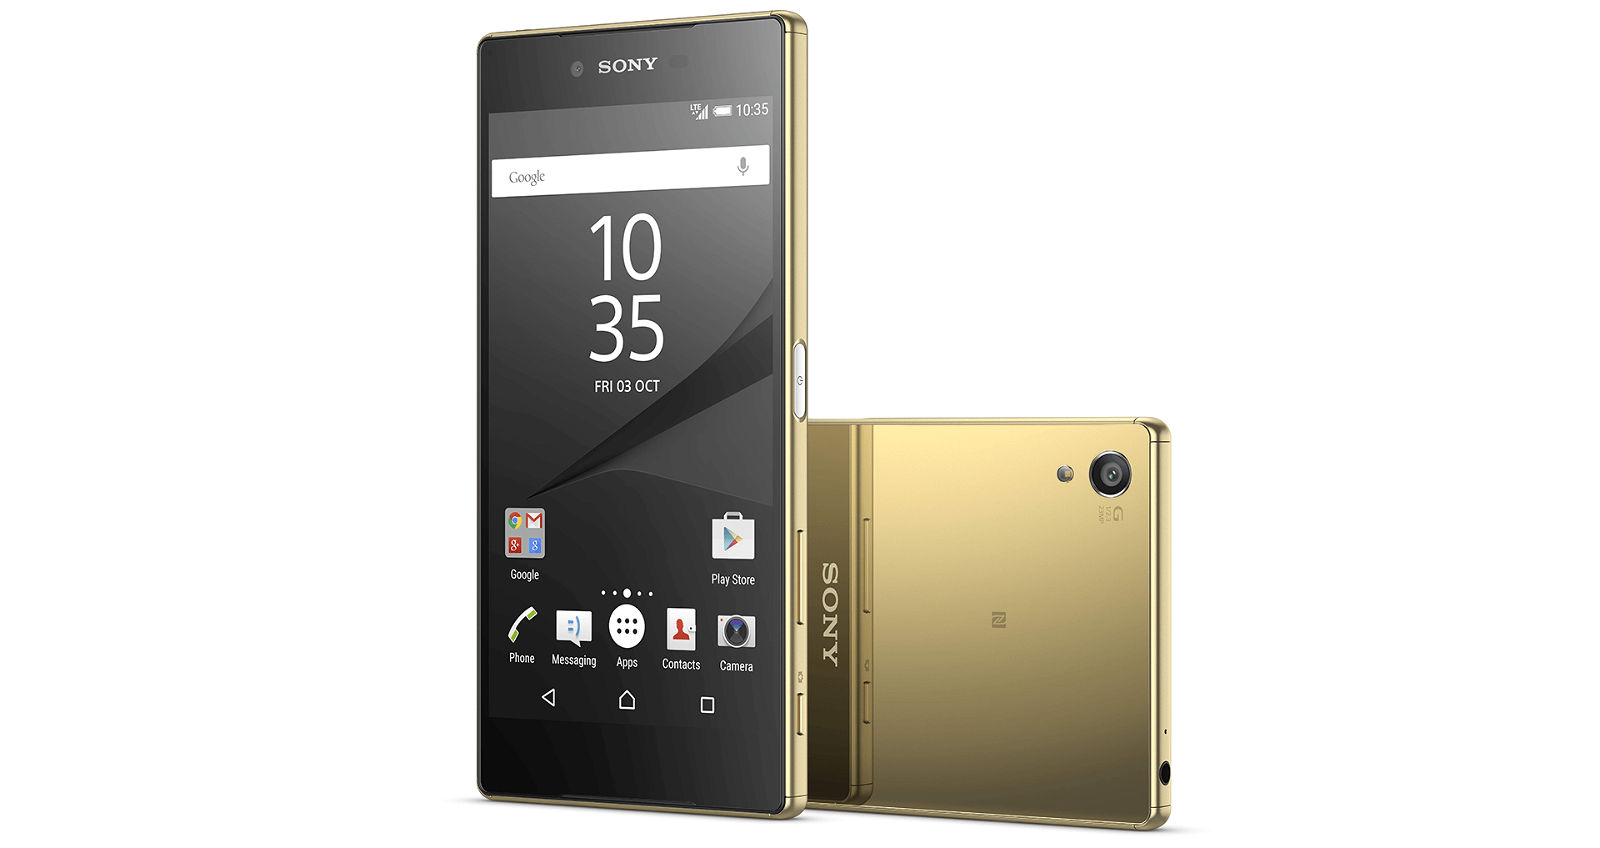 HOW TO: Install TWRP Recovery on Sony Xperia Z5 - Complete Guide